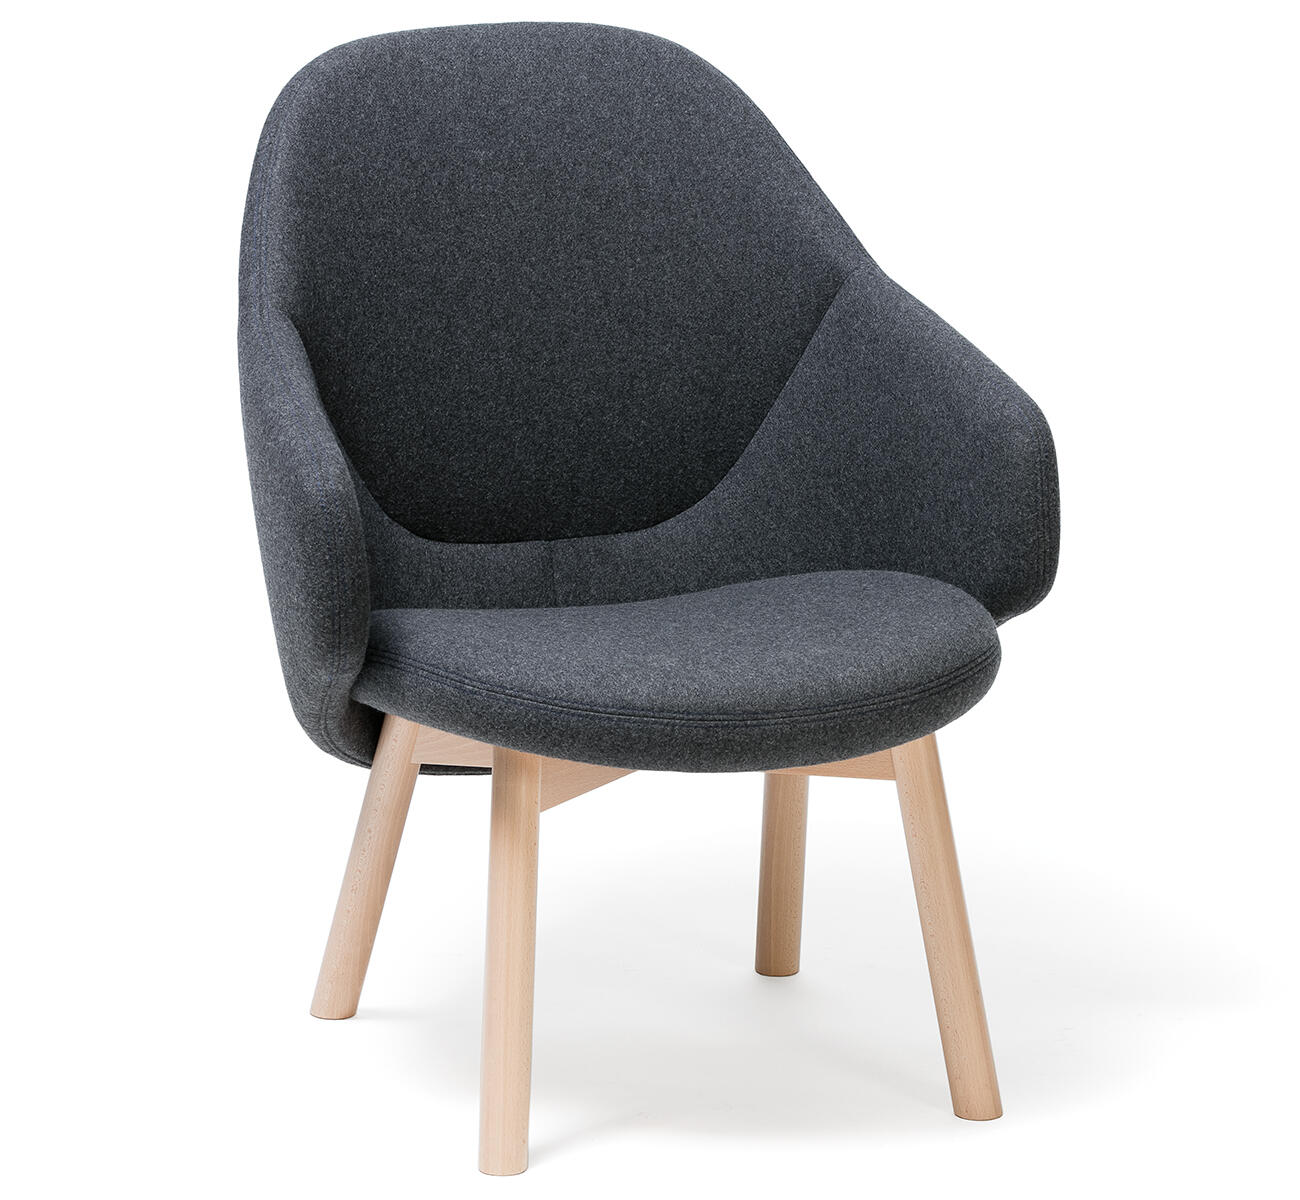 Super Alba Lounge Armchair Ton A S Handcrafted For Generations Unemploymentrelief Wooden Chair Designs For Living Room Unemploymentrelieforg